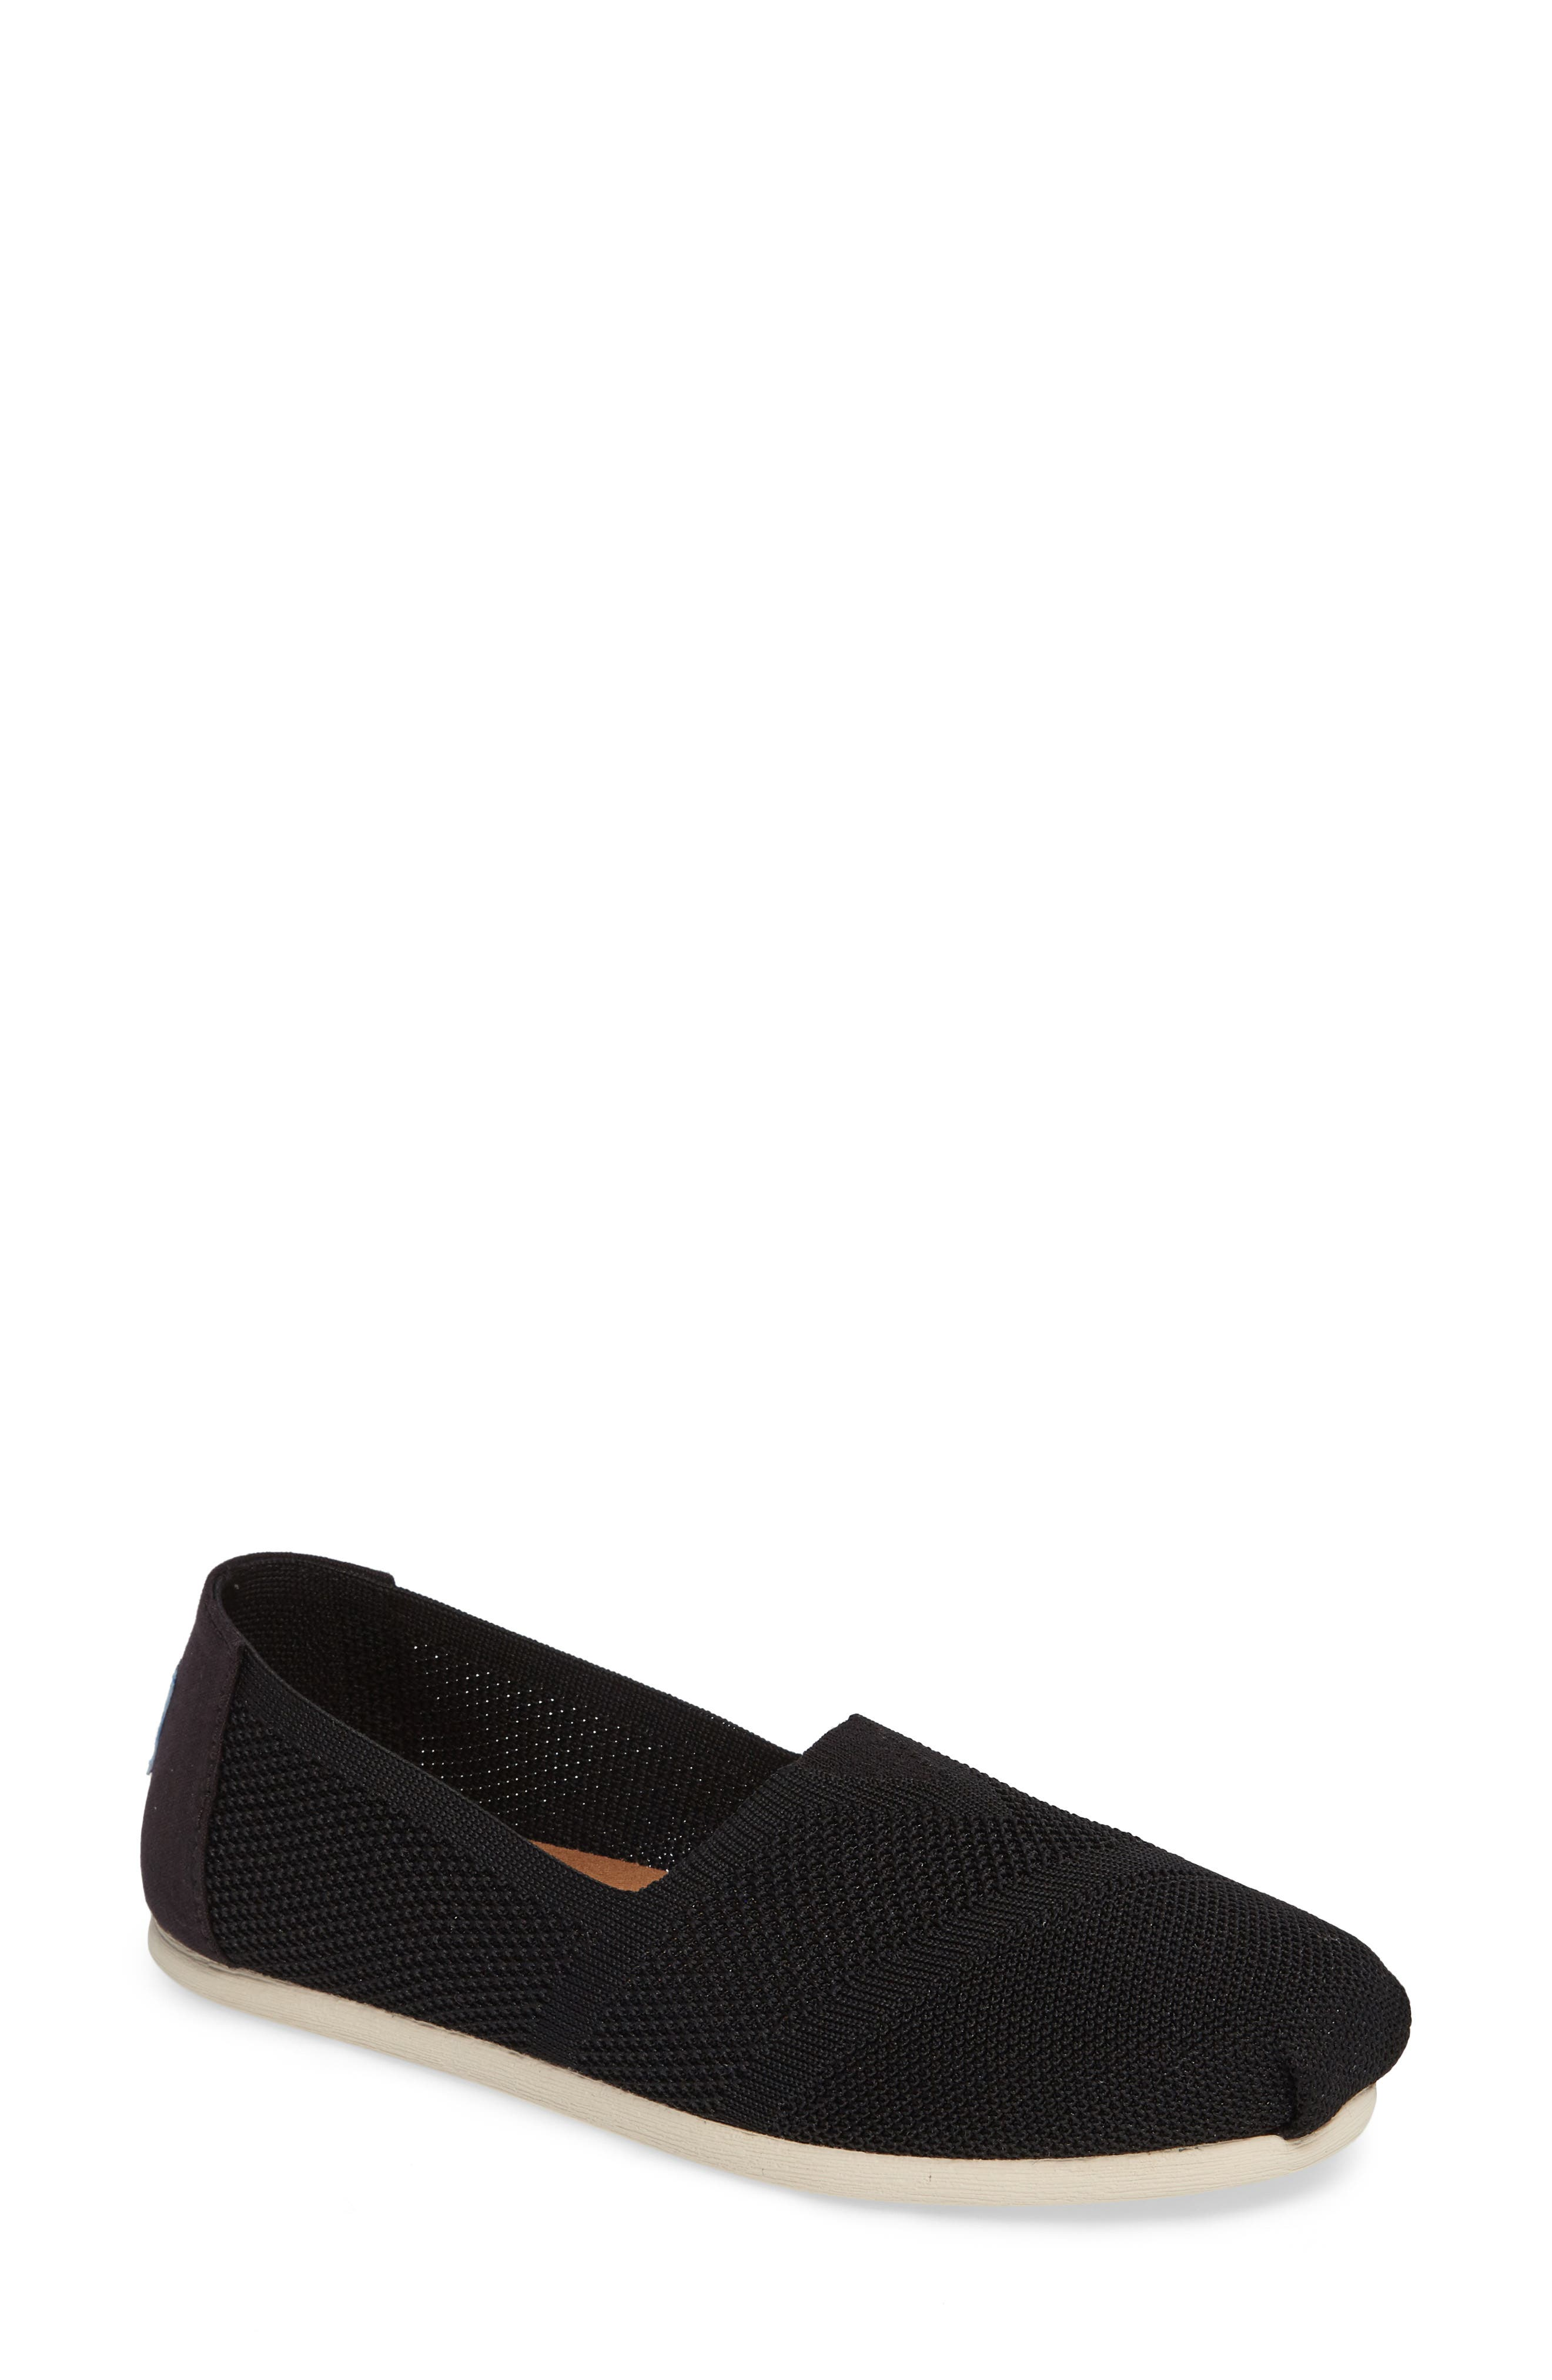 Alternate Image 1 Selected - TOMS Alpargata Knit Slip-On (Women)